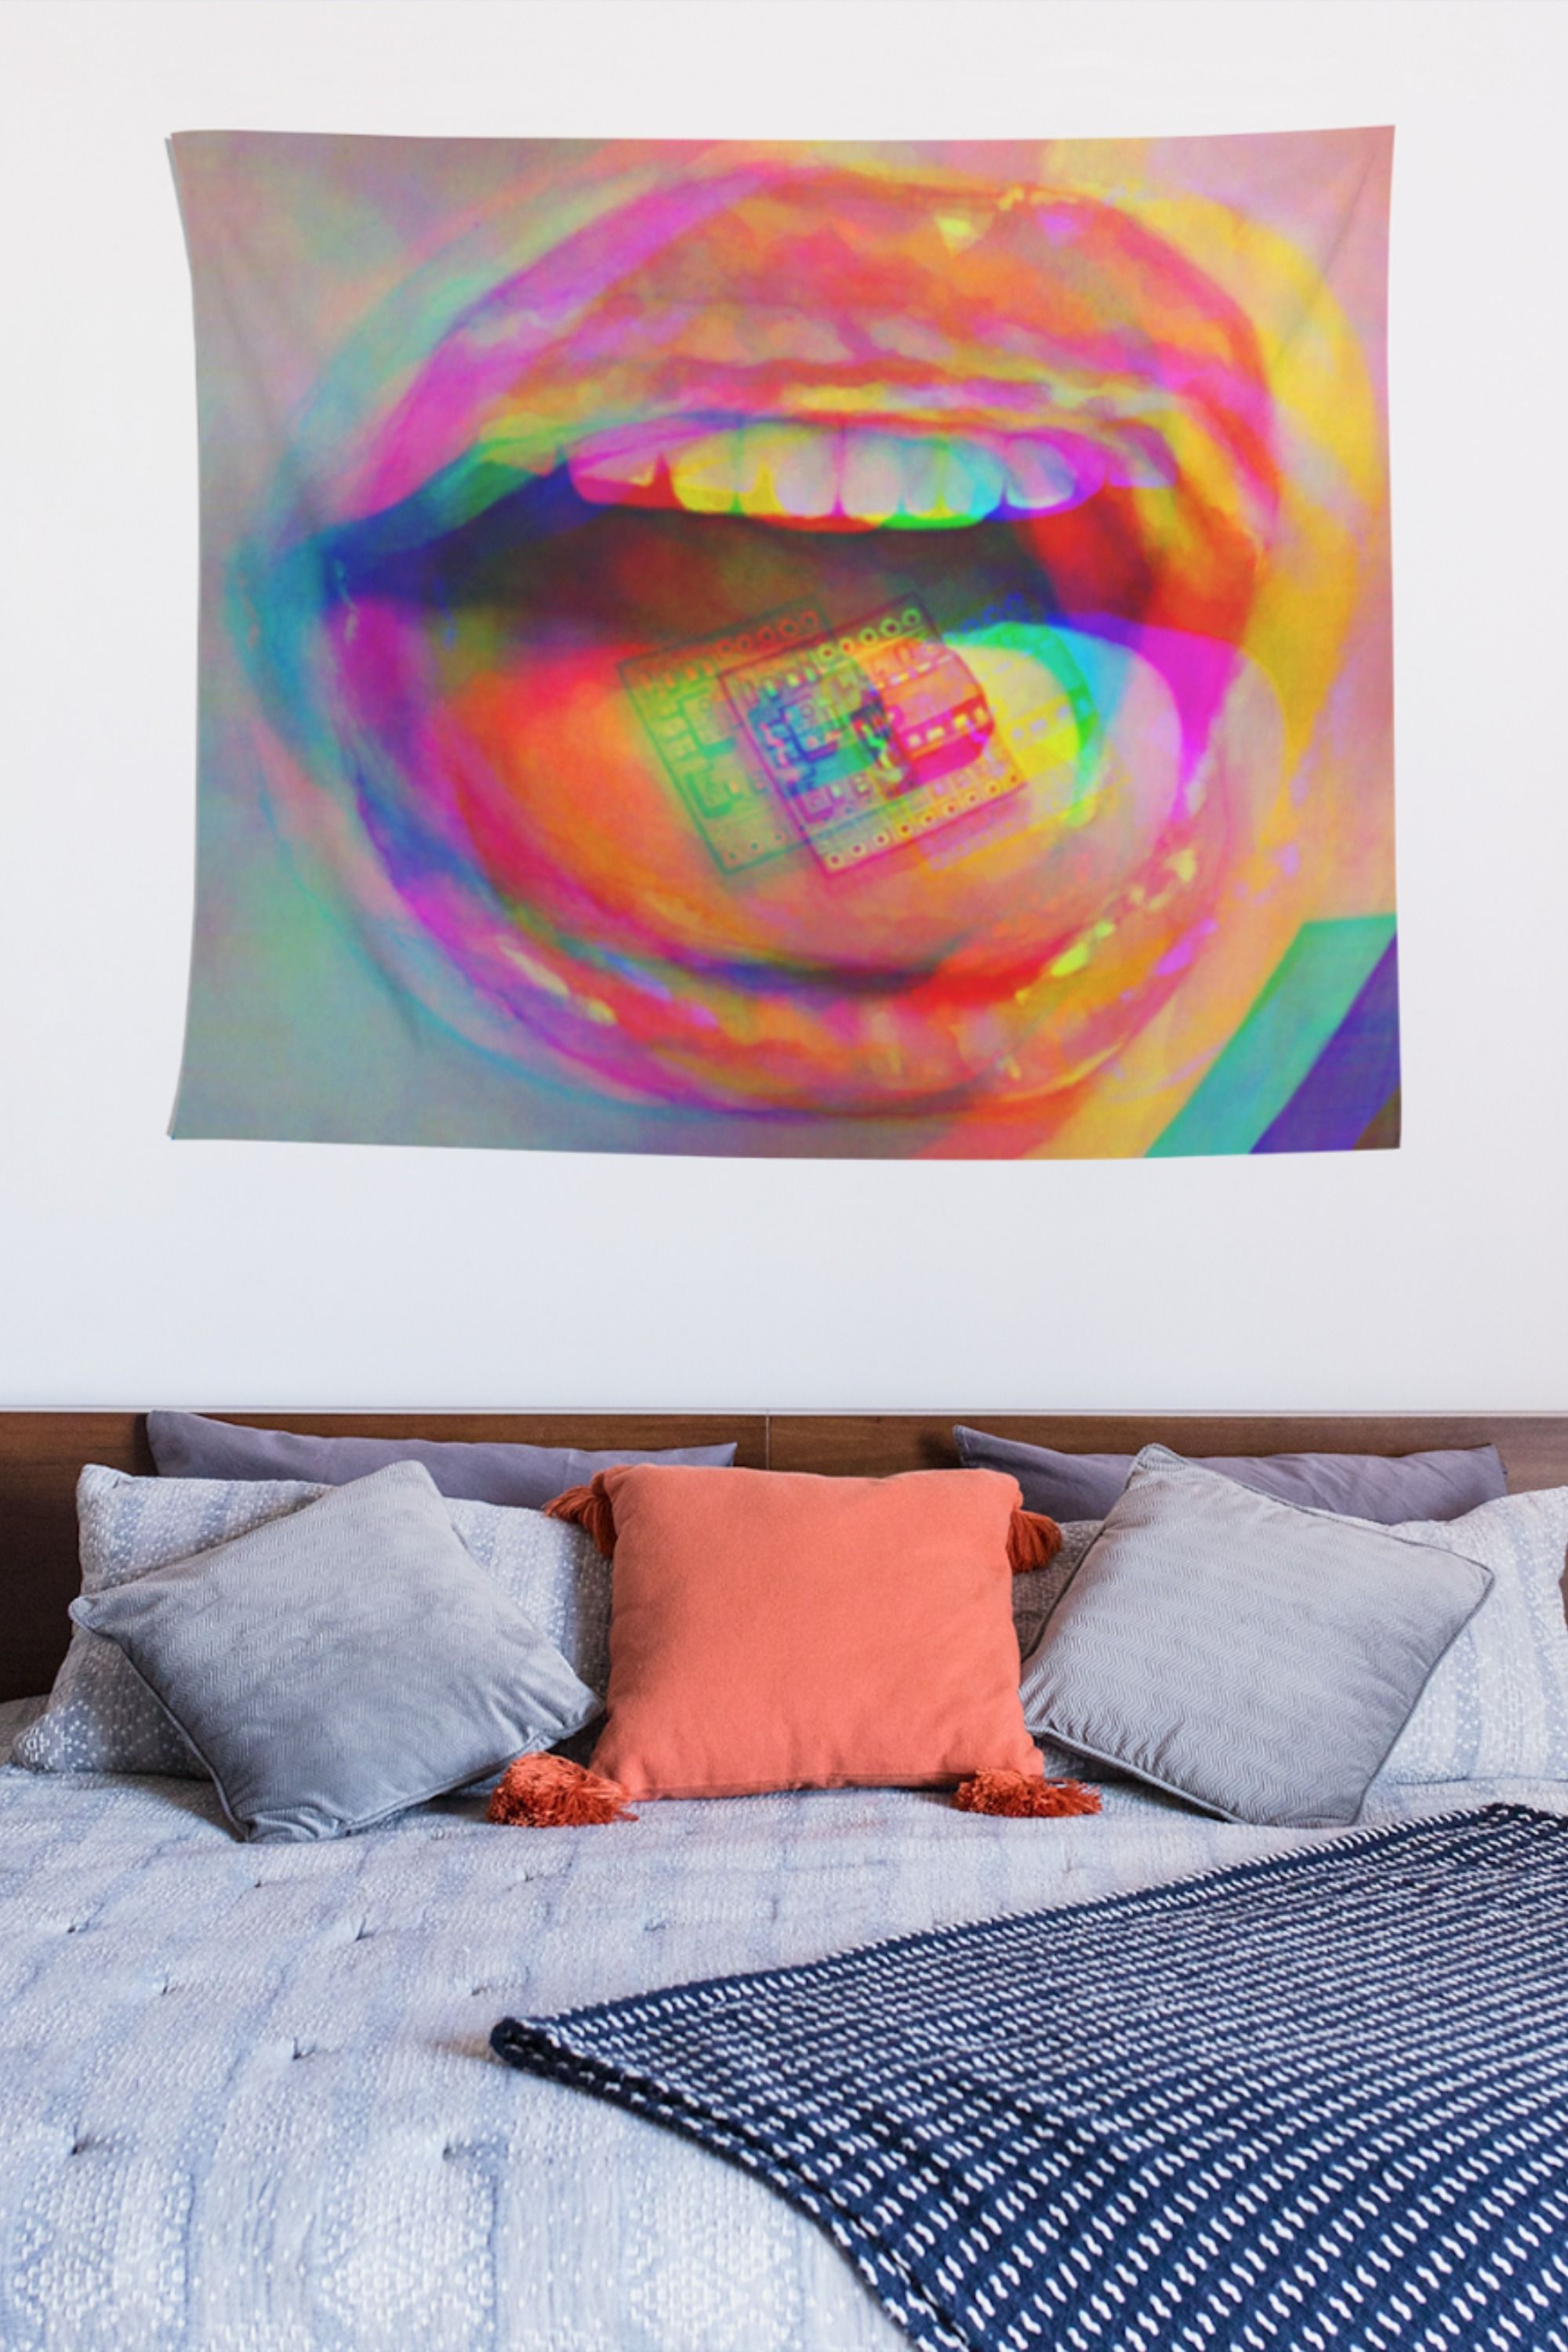 Psychedelic Scenery Tapestry Hippie Room Wall Hanging Tapestry Art Decor Gift